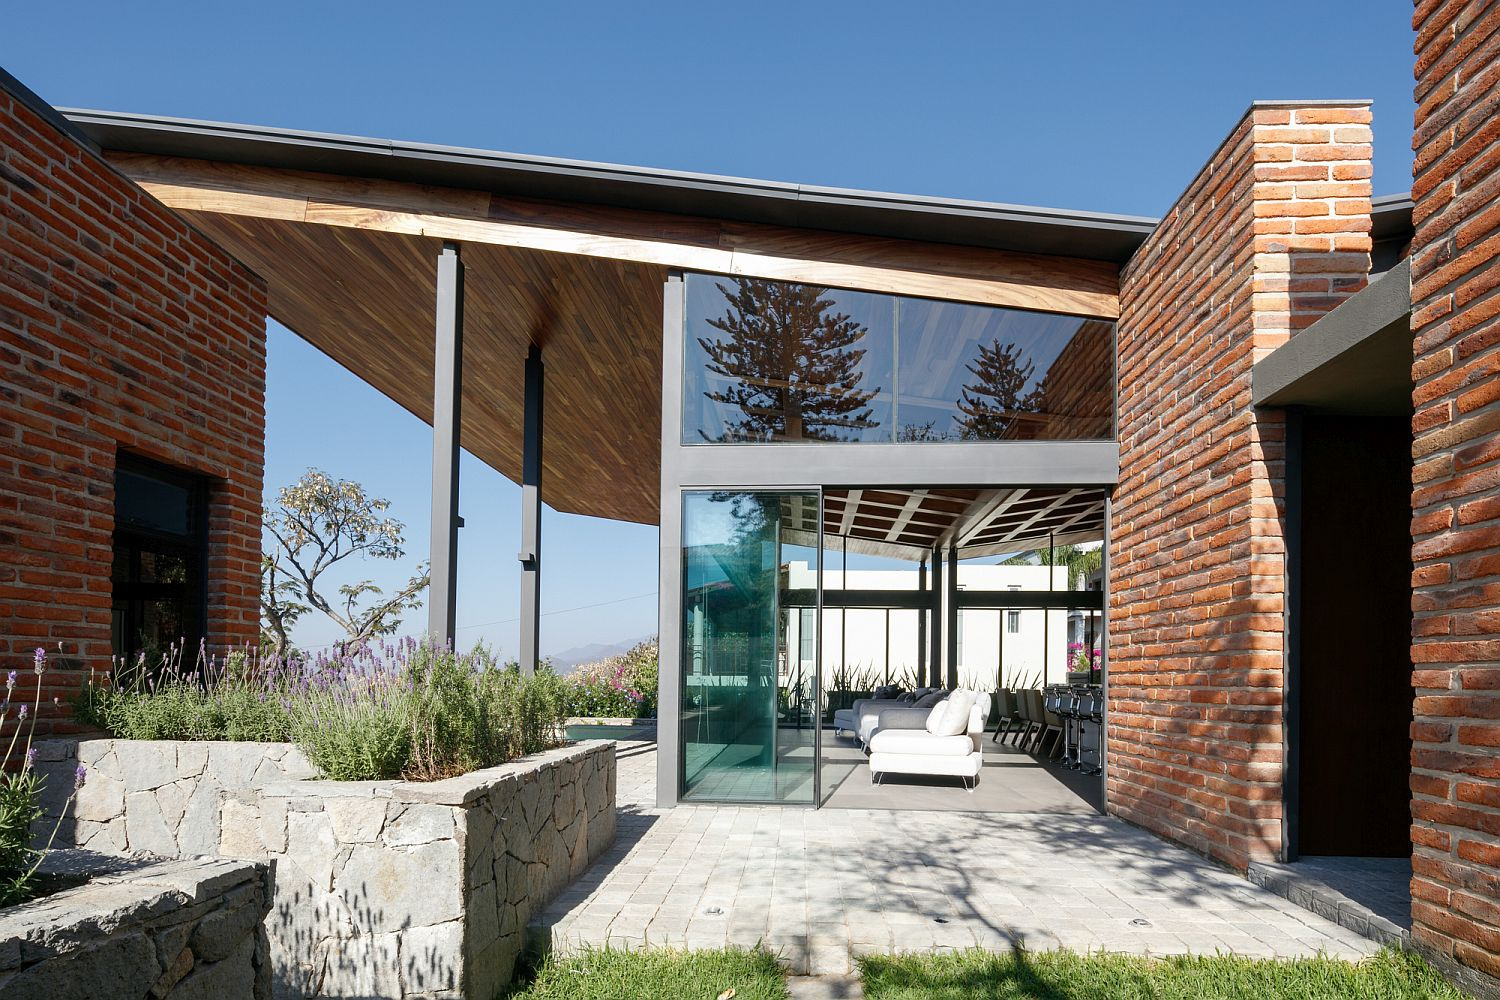 Locally-sourced-materials-coupled-with-brick-to-create-a-cool-urban-home